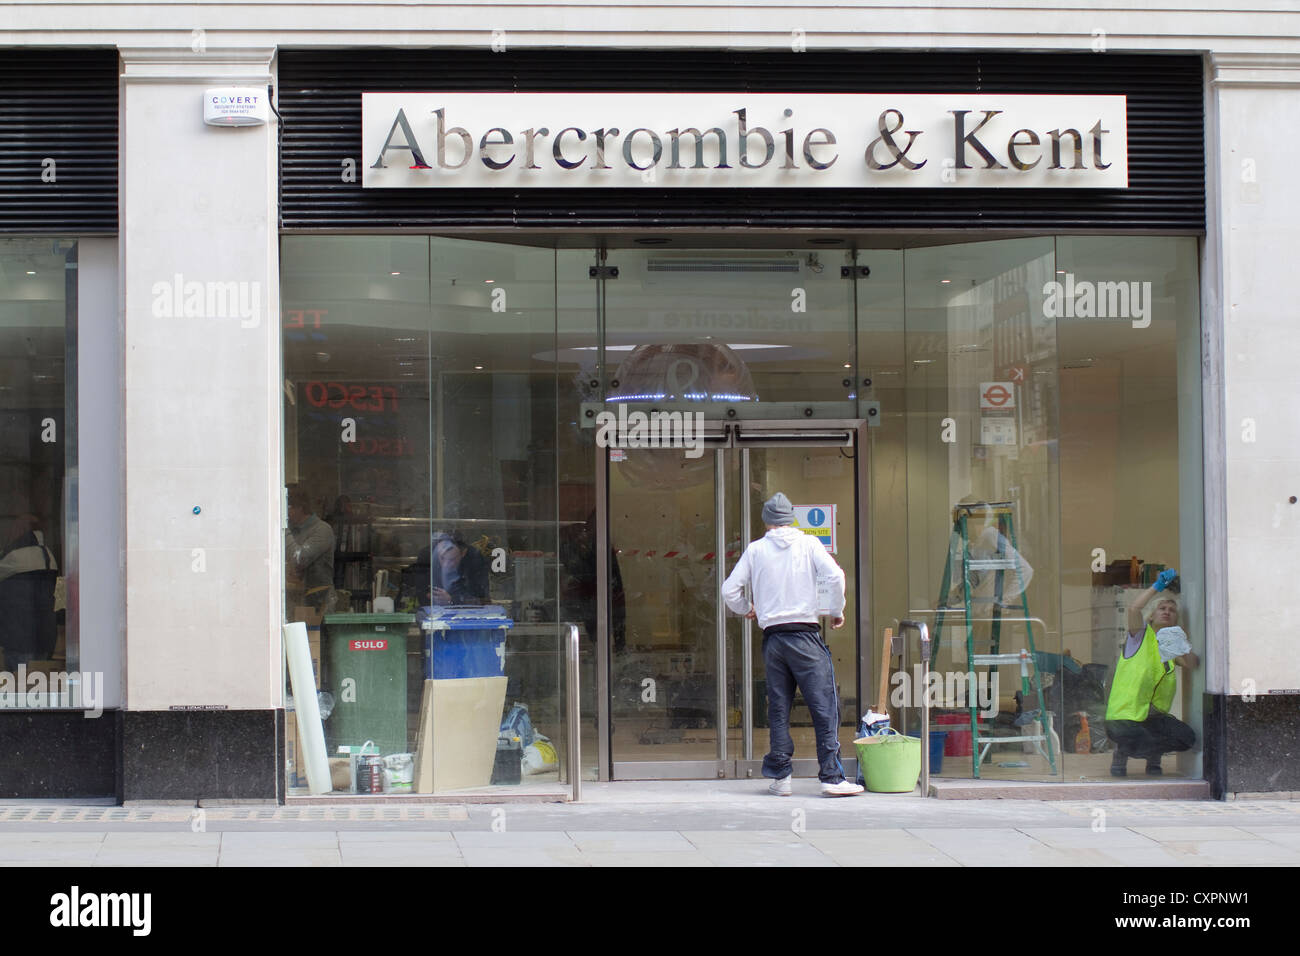 Abercrombie and Kent store central London being refurbished - Stock Image